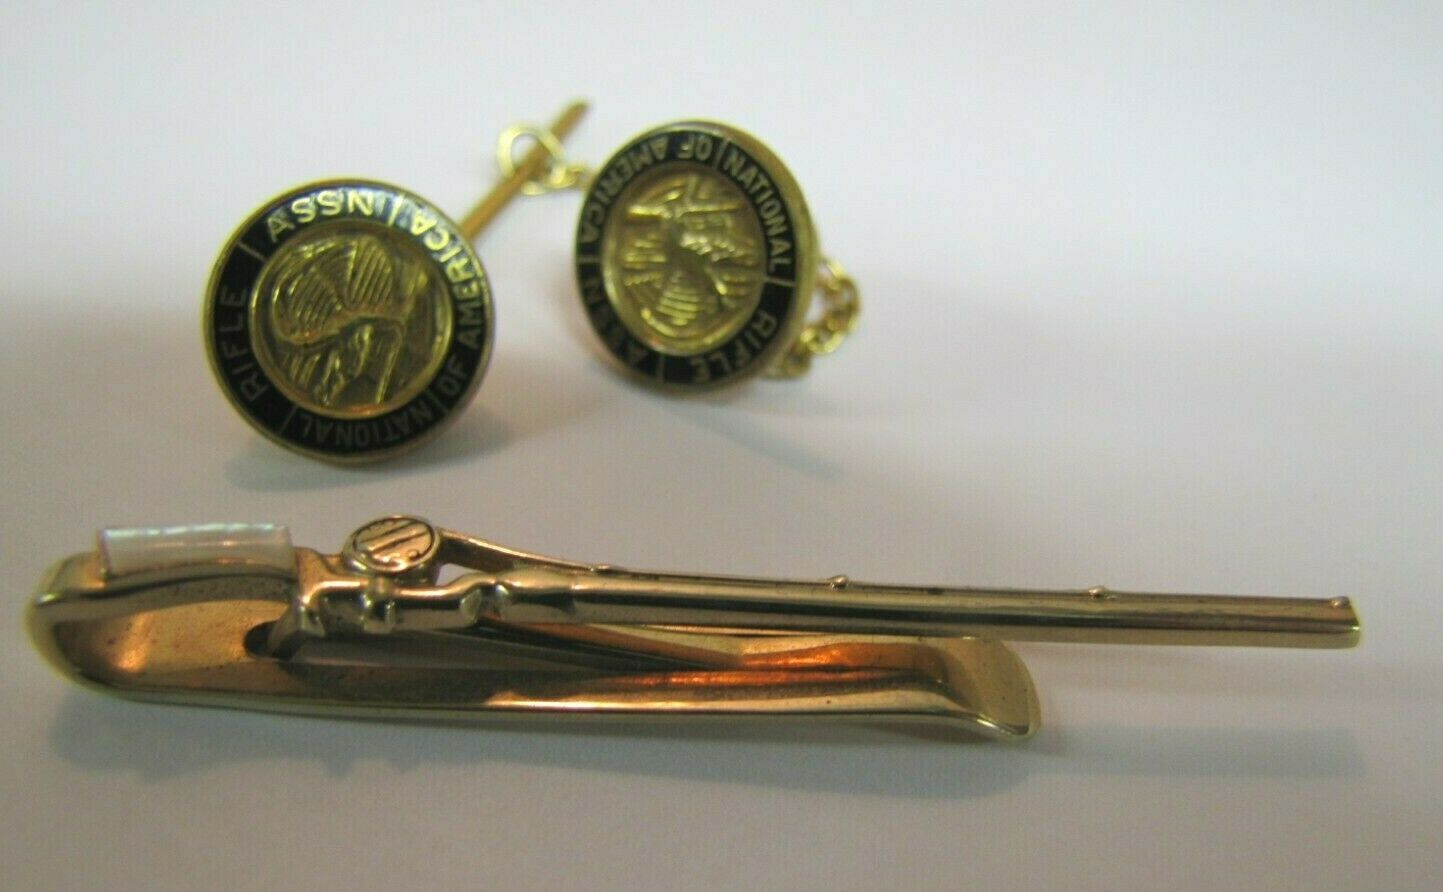 Old Rifle Style Antiqued Details Swank Rifle Tie Clip Faux Wood Stock Golden Metals Vintage Tie Accessories